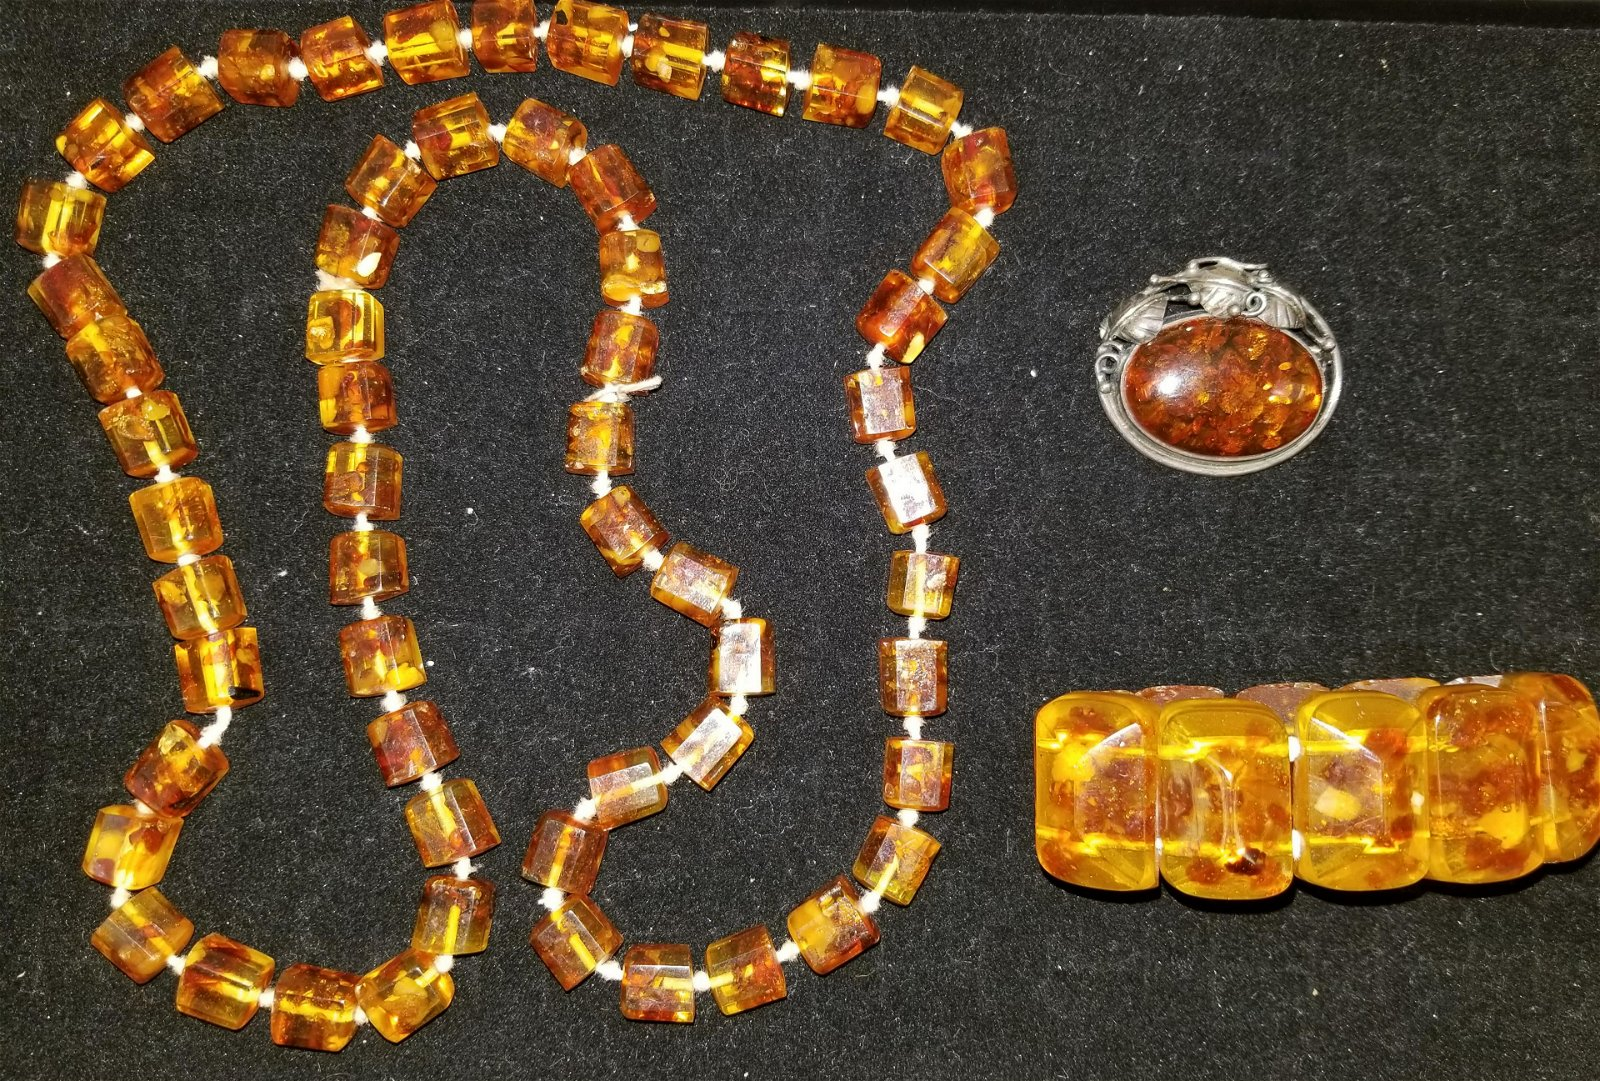 3 Pieces of Amber Jewelry, 1 with Silver mounts